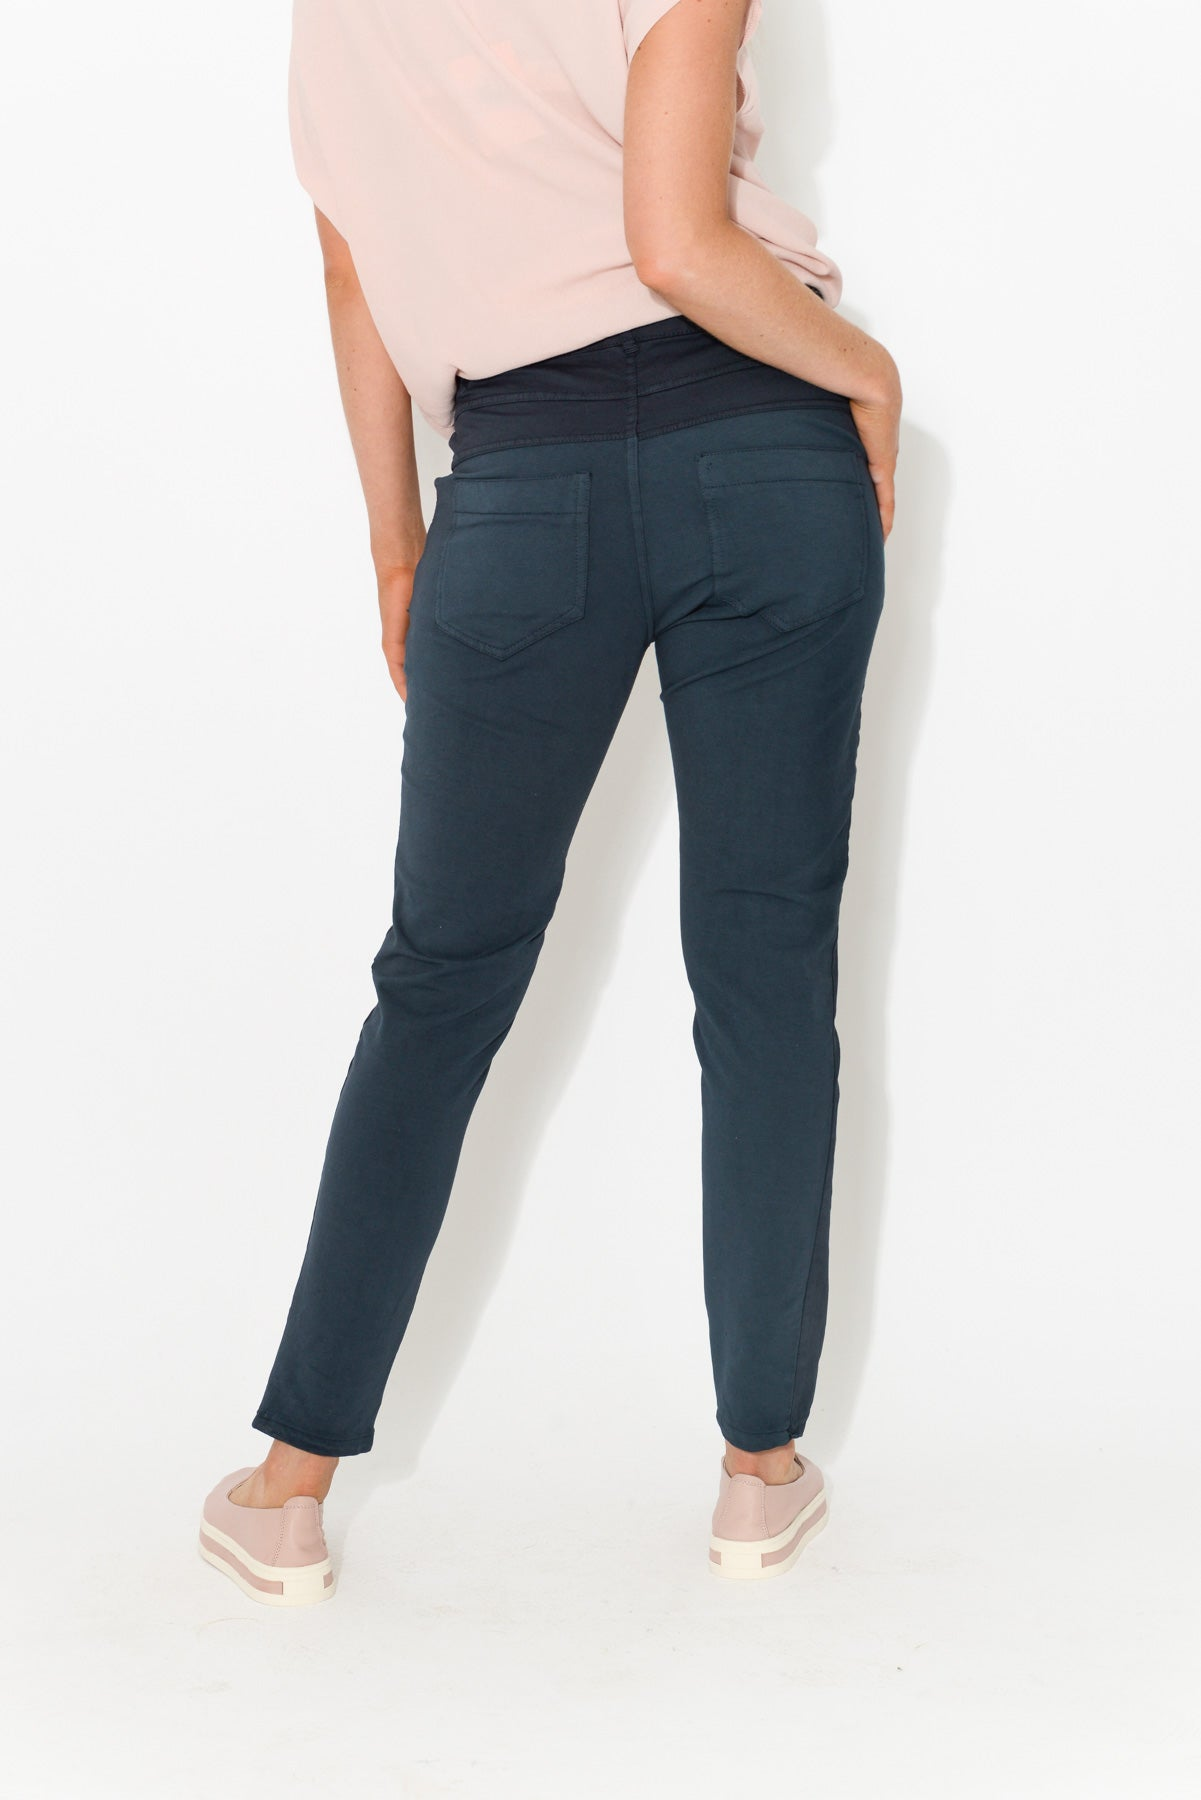 Alexis Navy Stretch Back Pant - Blue Bungalow